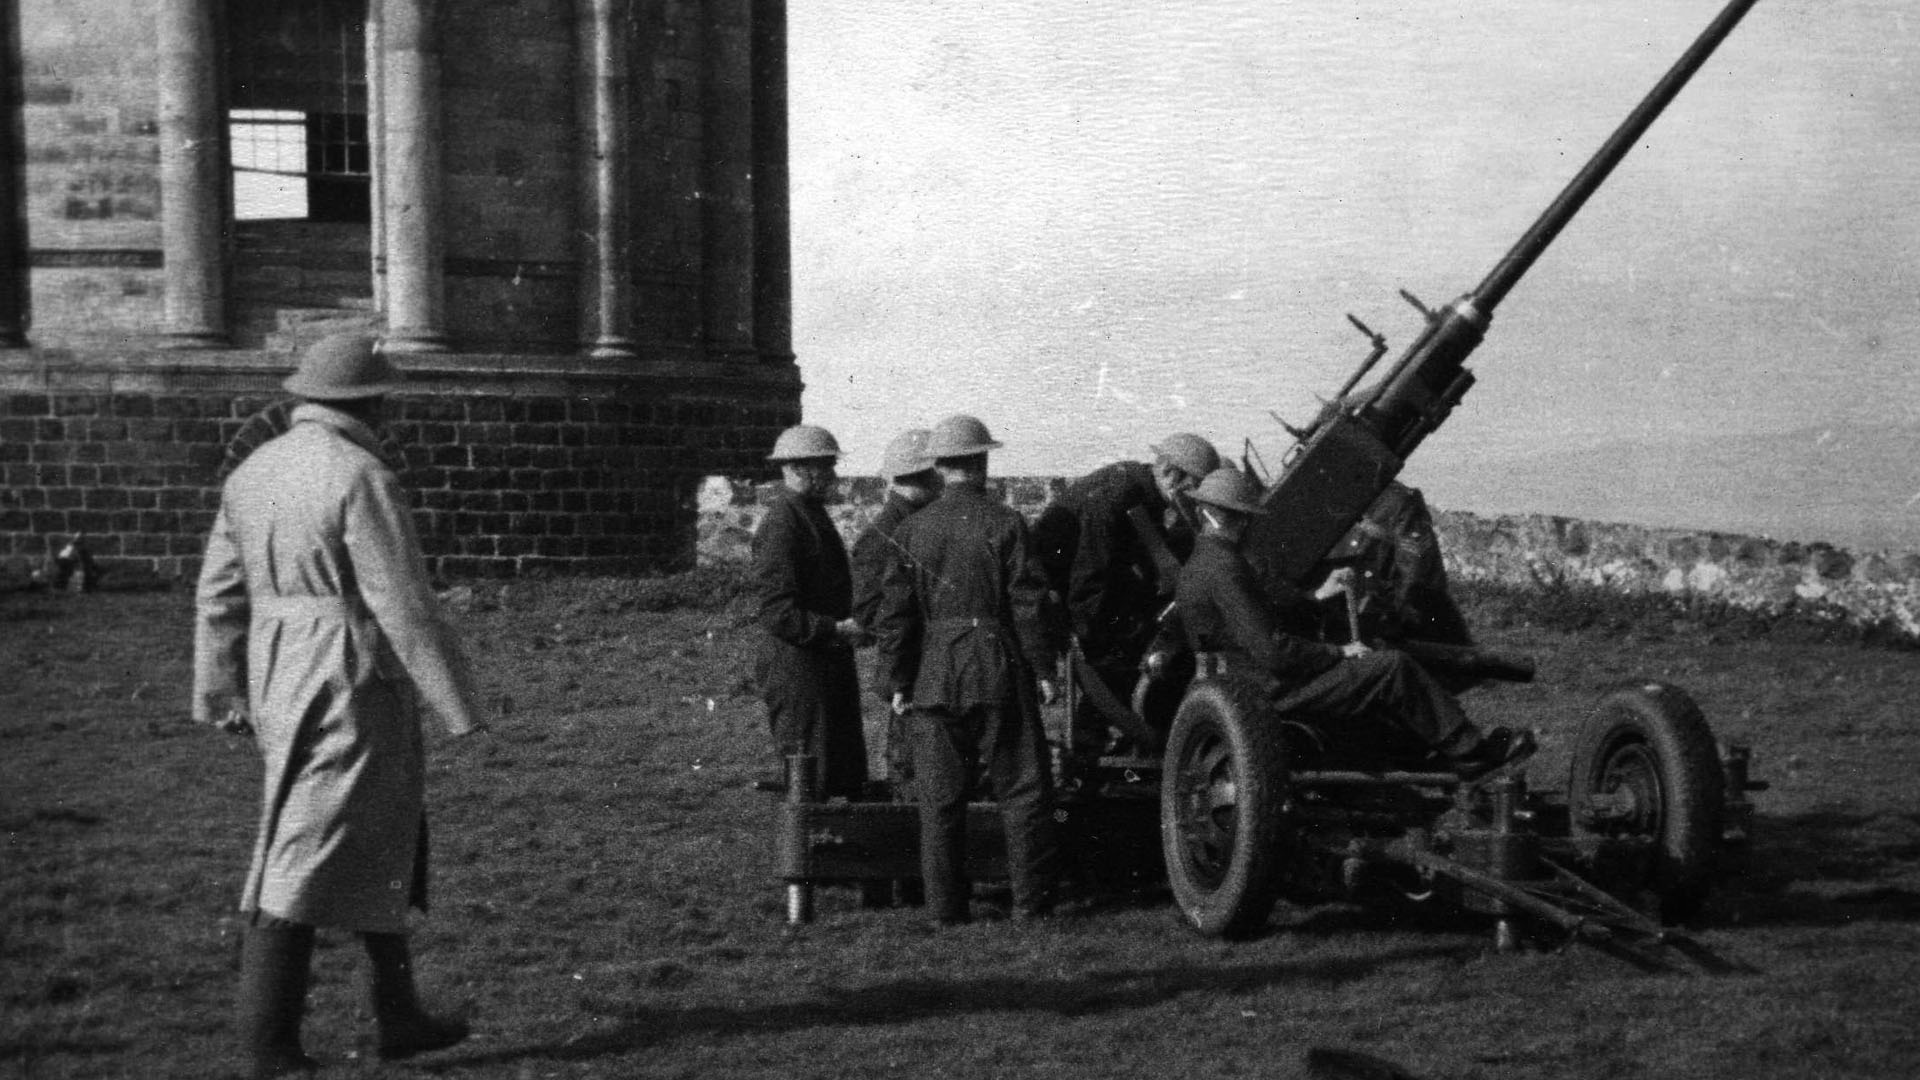 Bofors Gun at Mussenden Temple, Co. Londonderry